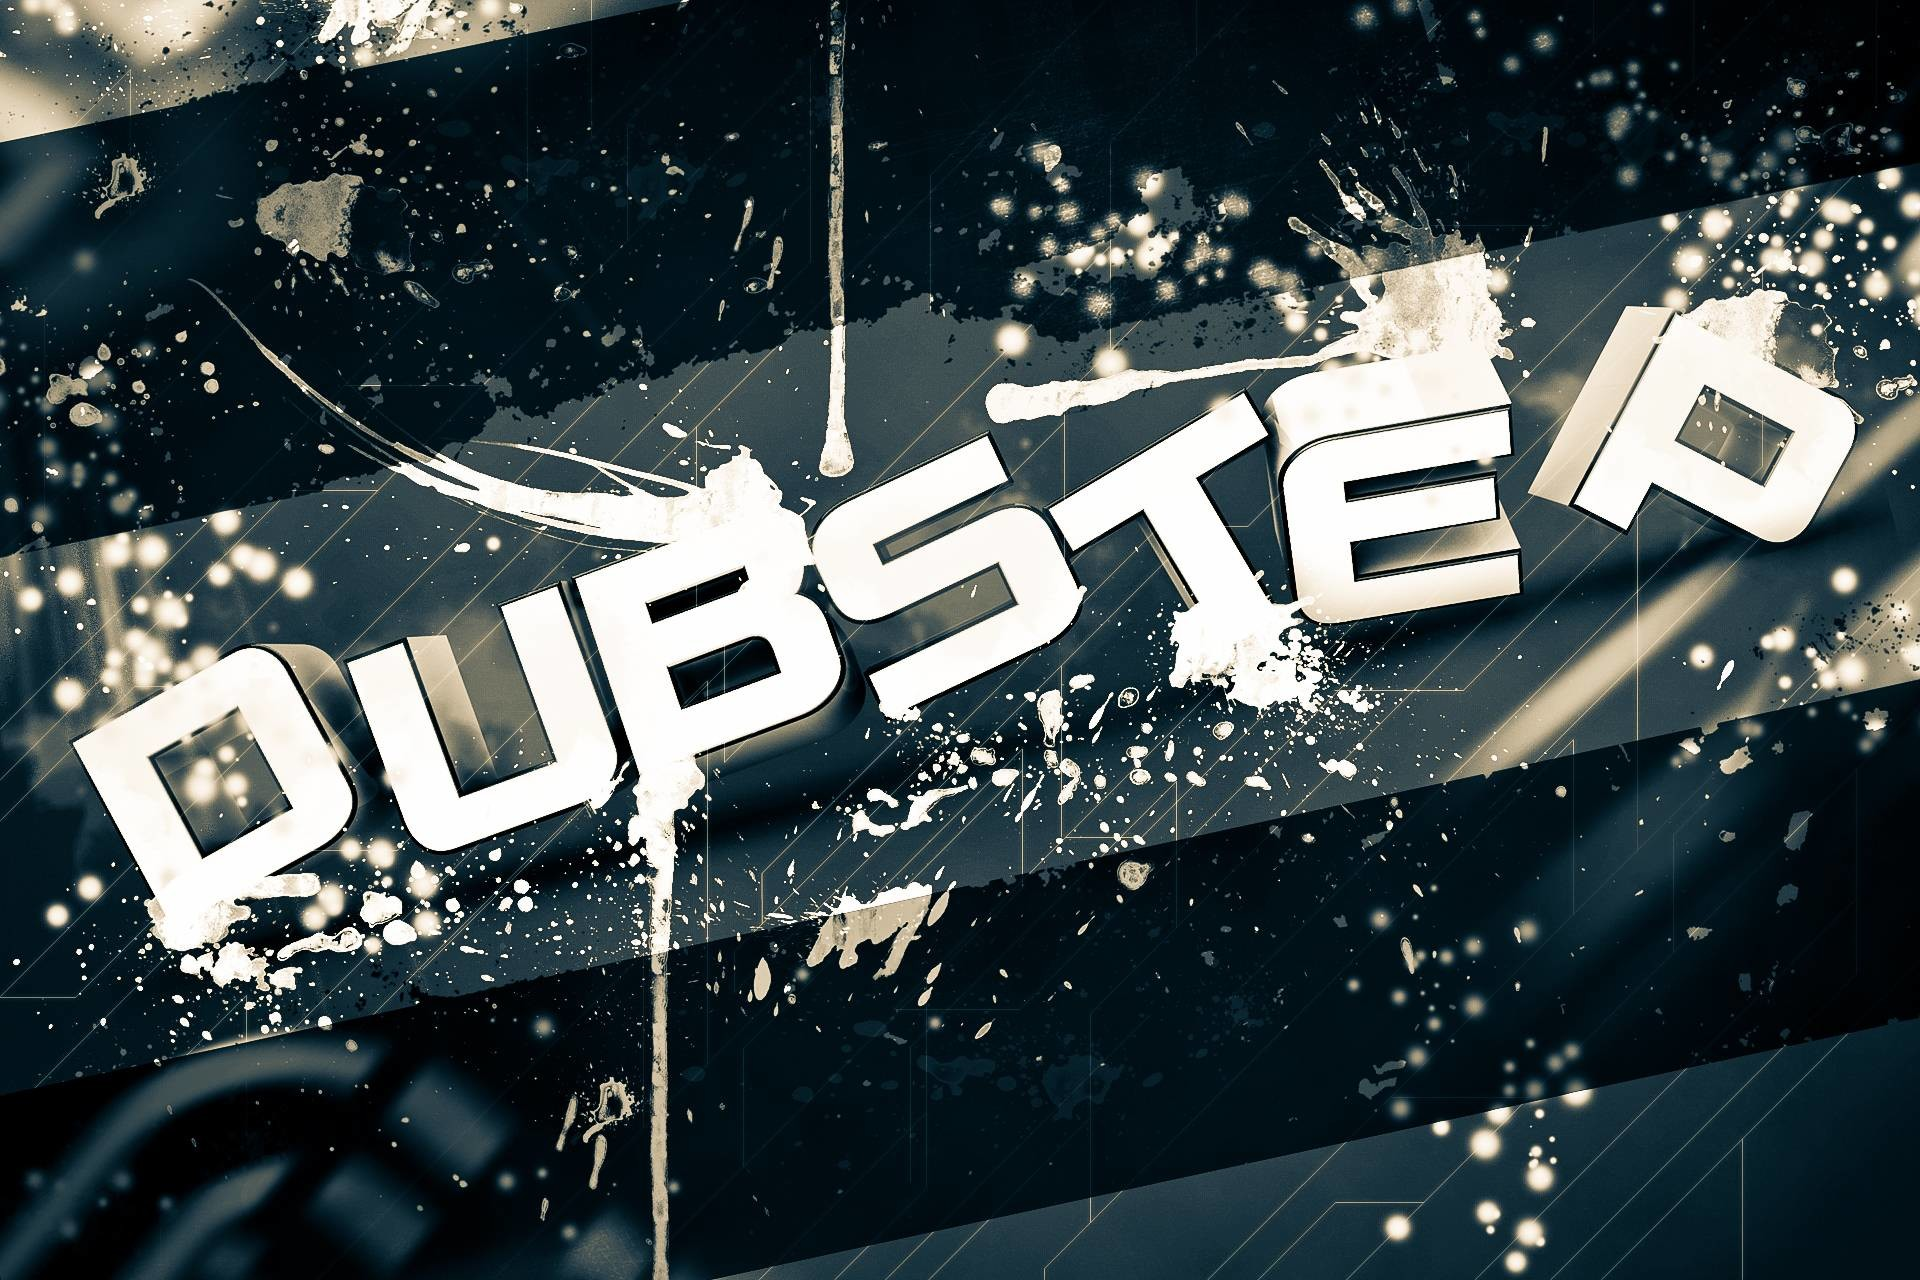 1920x1280 Abstract Dubstep Wallpaper Dubstep Wallpaper White | High Quality .